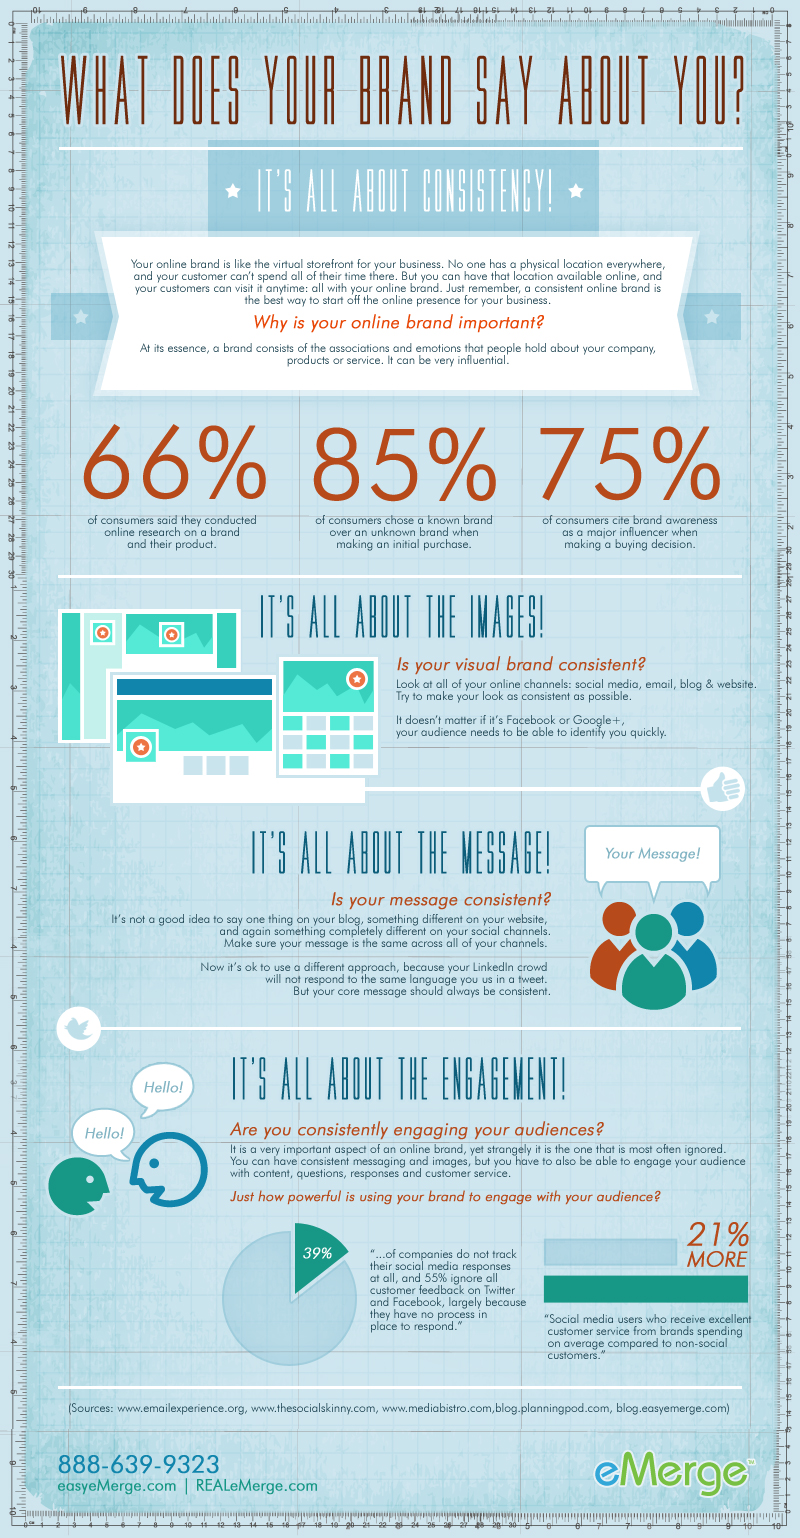 infographic: what is your online brand important